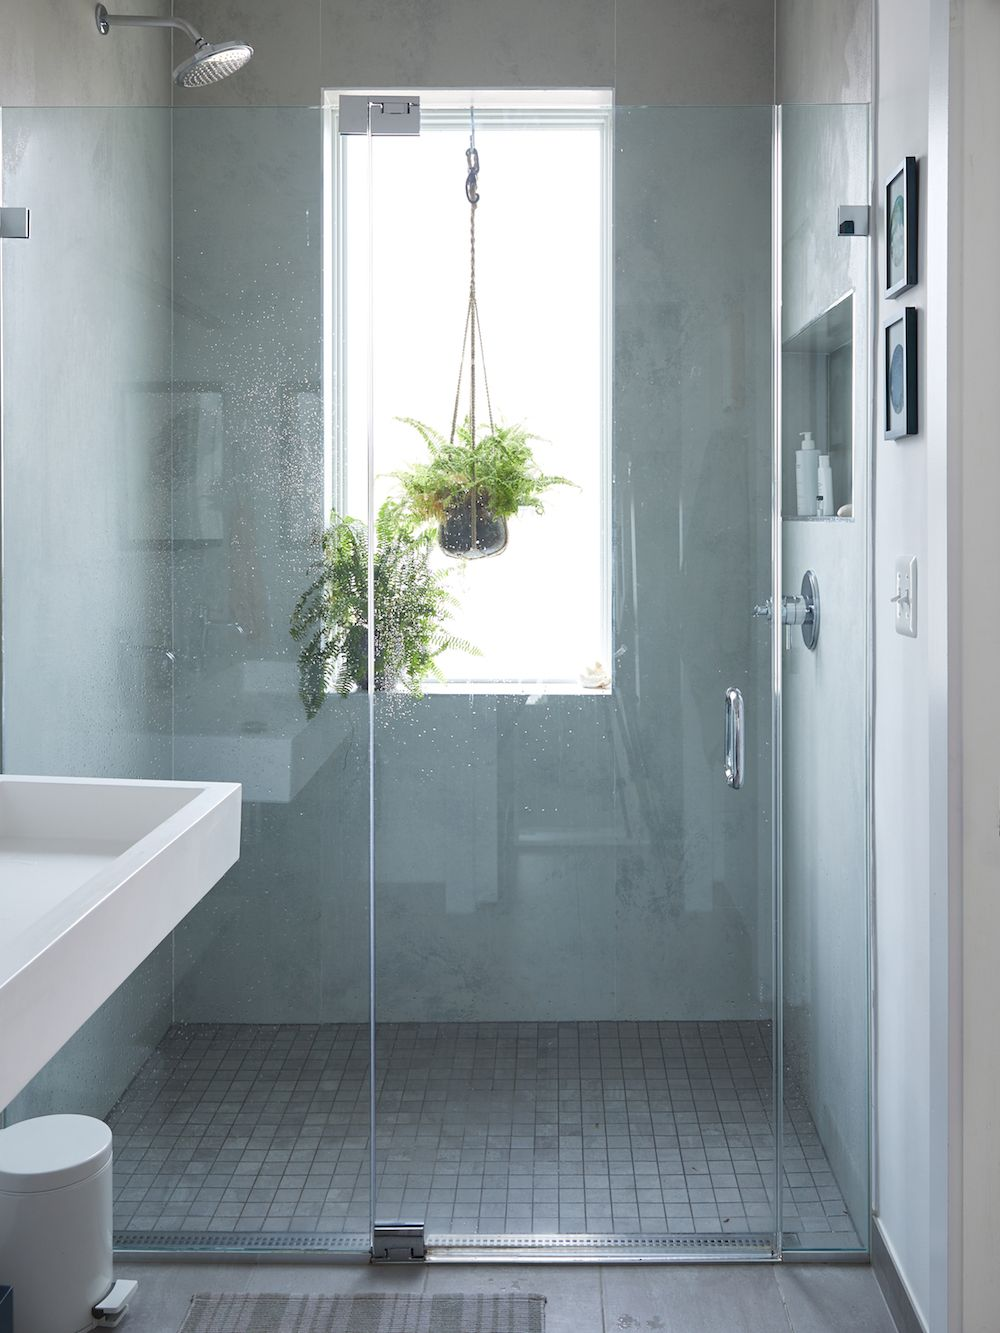 A D C Home Inspired By Ocean Blues A Cup Of Jo Window In Shower Bathroom Inspiration Small Bathroom